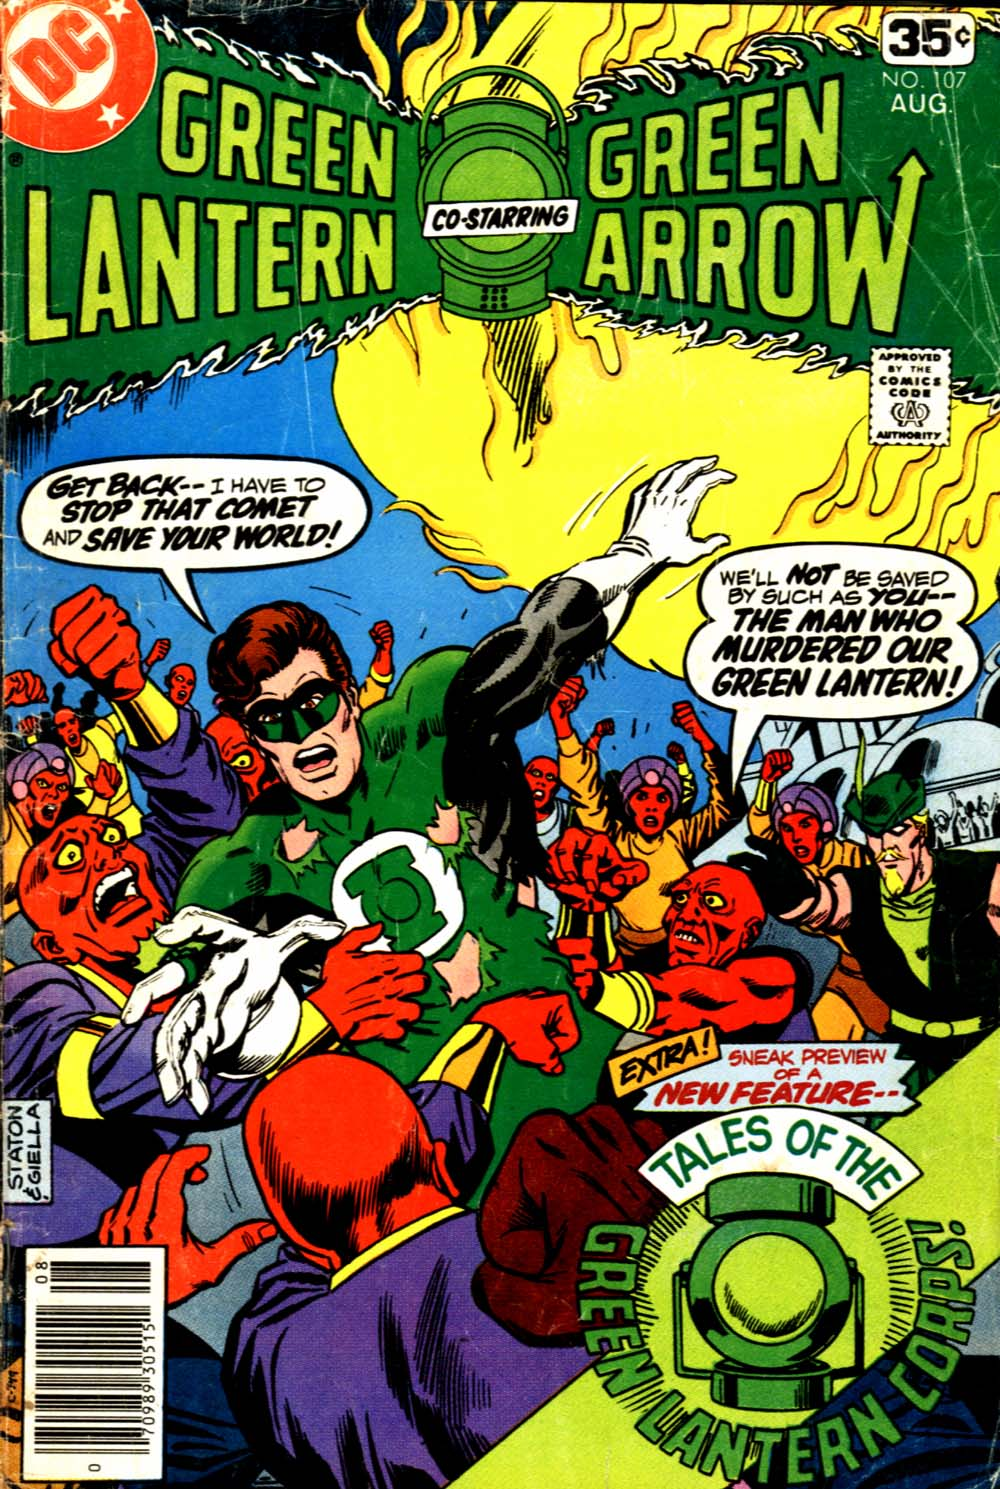 Green Lantern (1960) #107, cover penciled by Joe Staton & inked by Joe Giella.